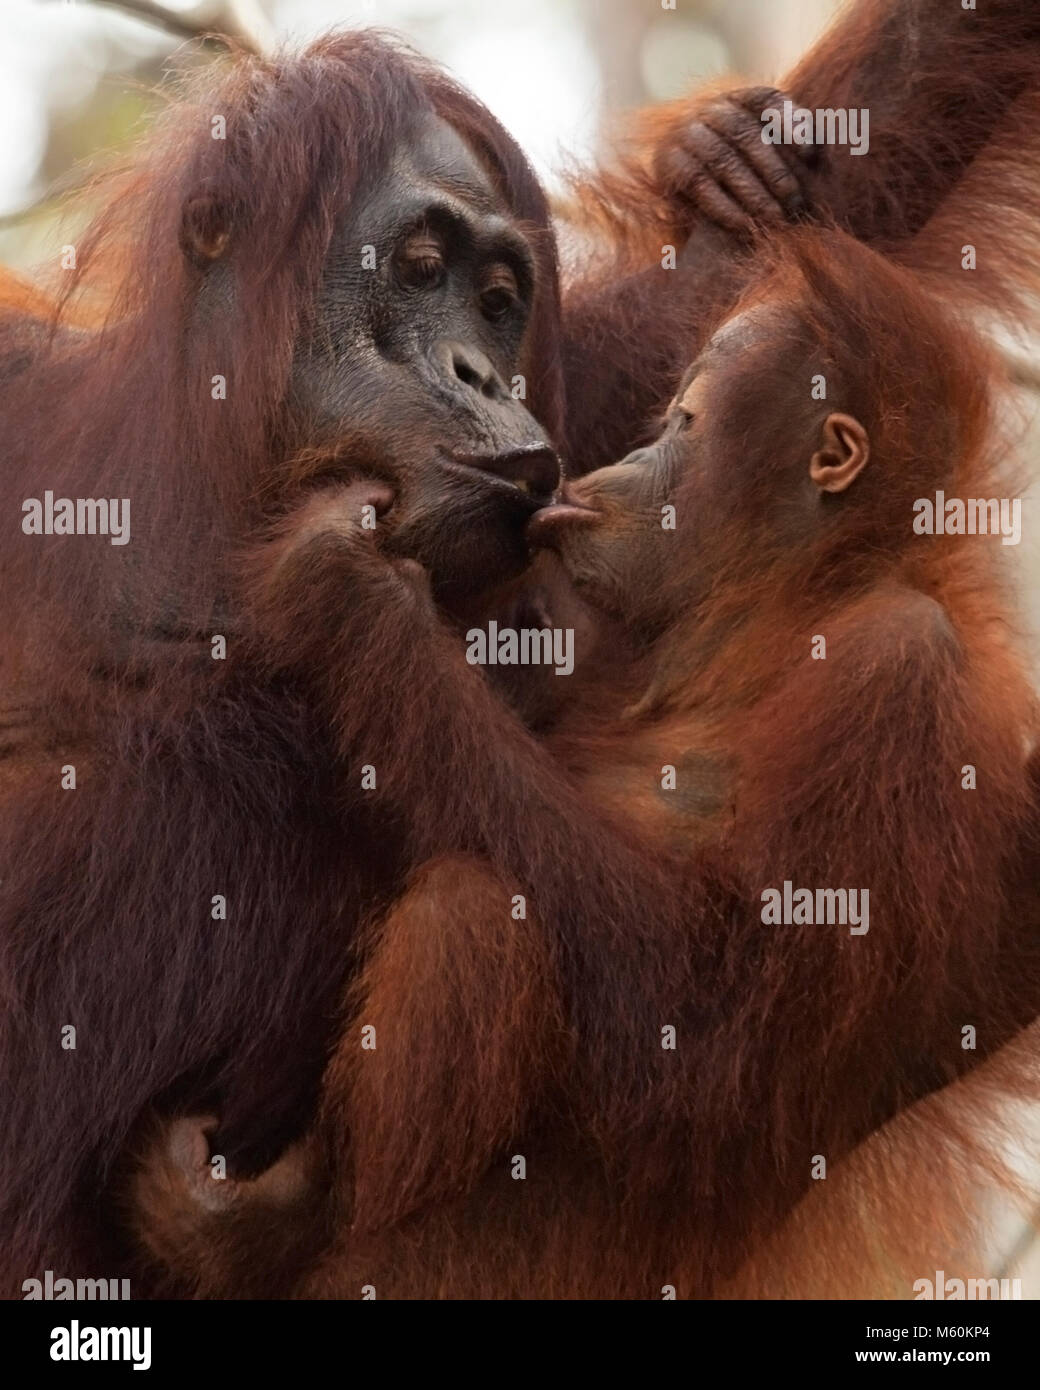 Wild orangutan mother holding baby (Pongo pygmaeus) in Tanjung Puting National Park - Stock Image